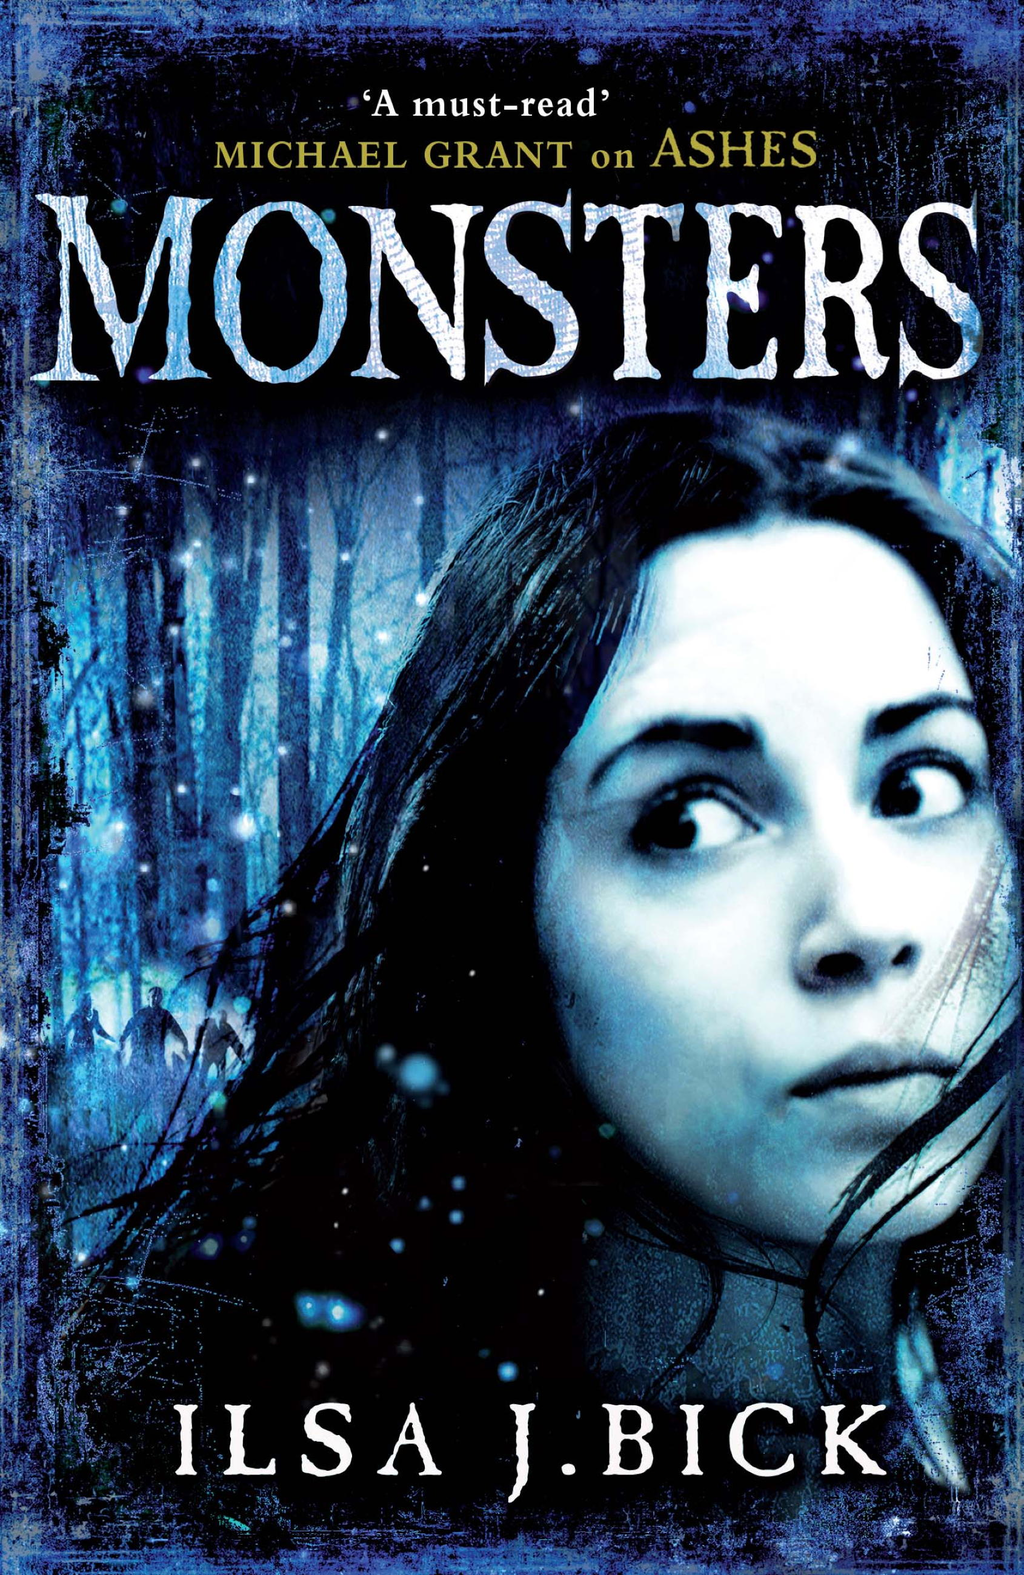 Monsters The Third and Final Book in the Ashes Trilogy